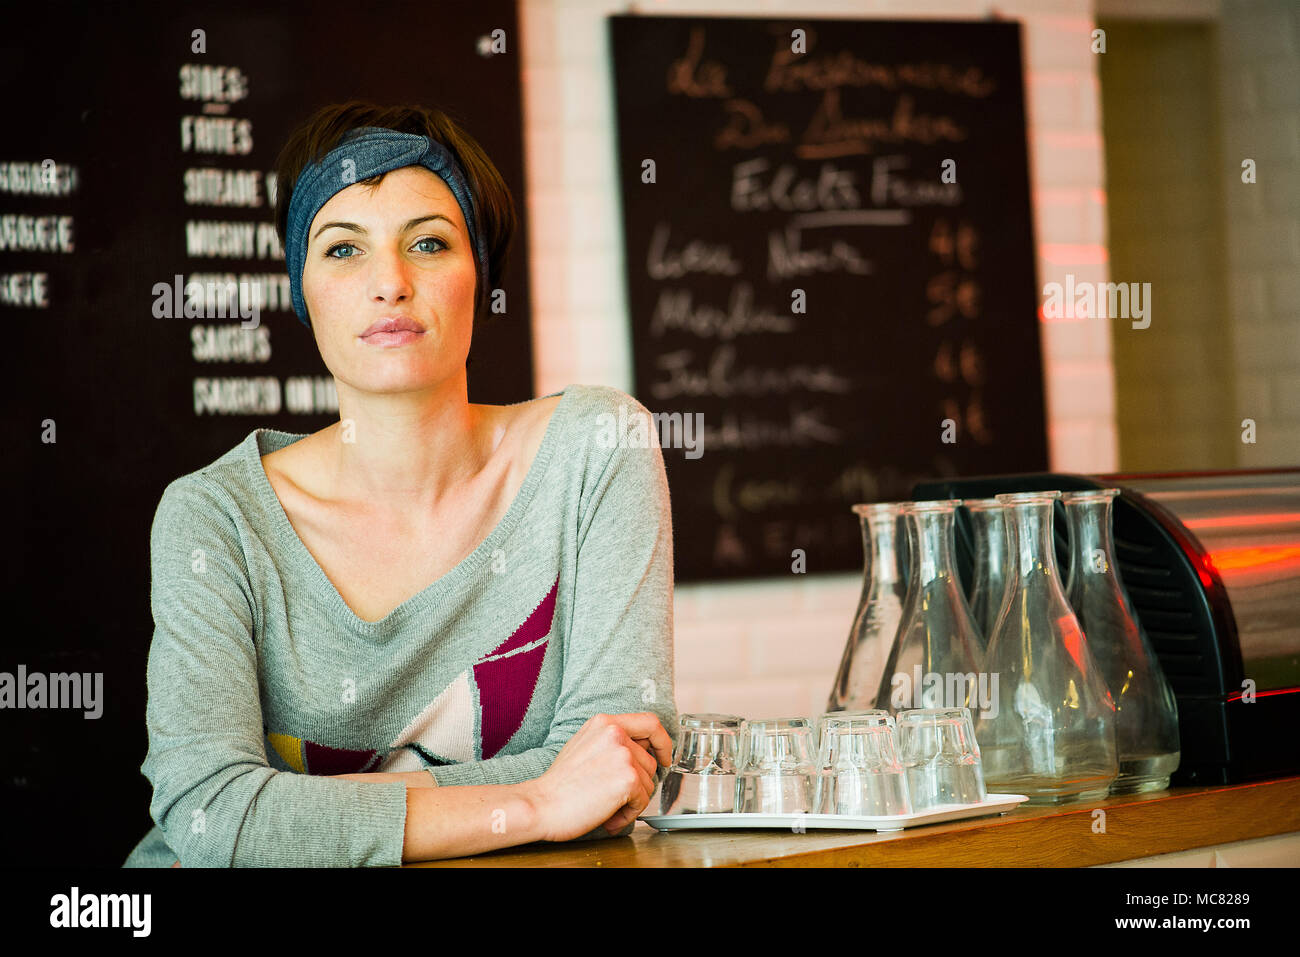 Waitress smiling in cafe, portrait - Stock Image